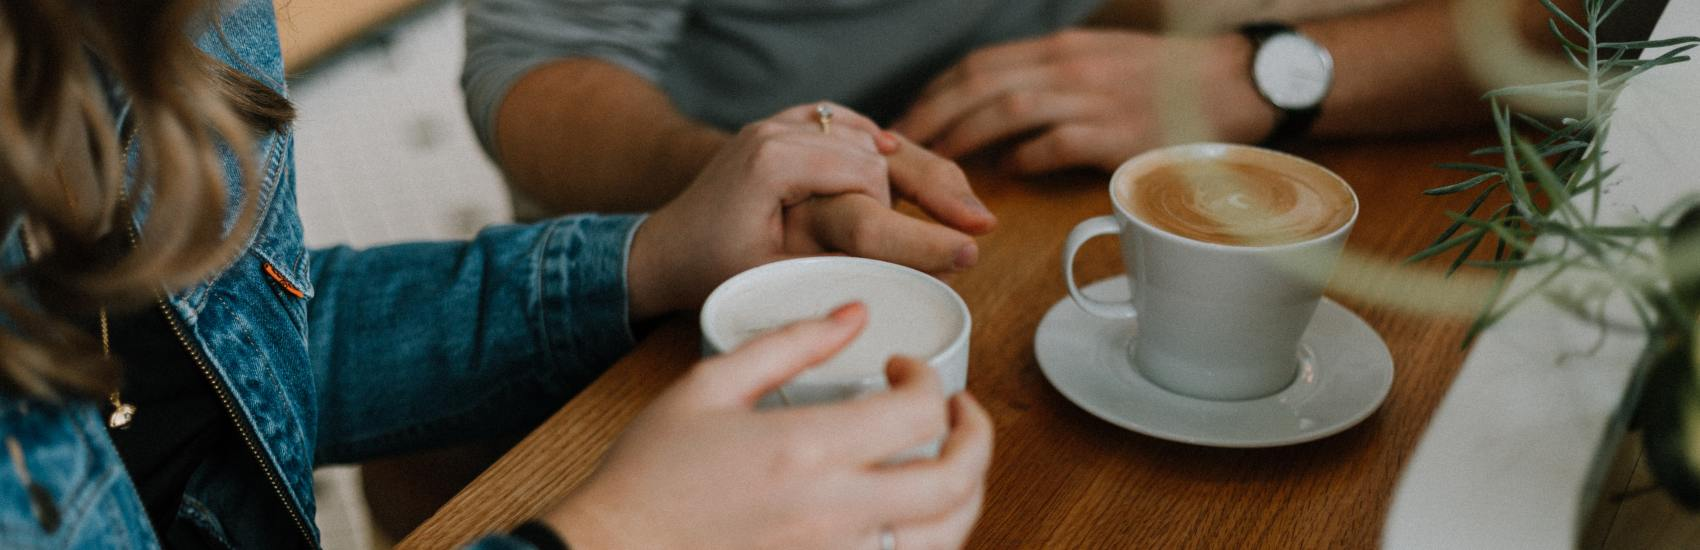 100 Fun Questions to Ask Your Spouse on a Date